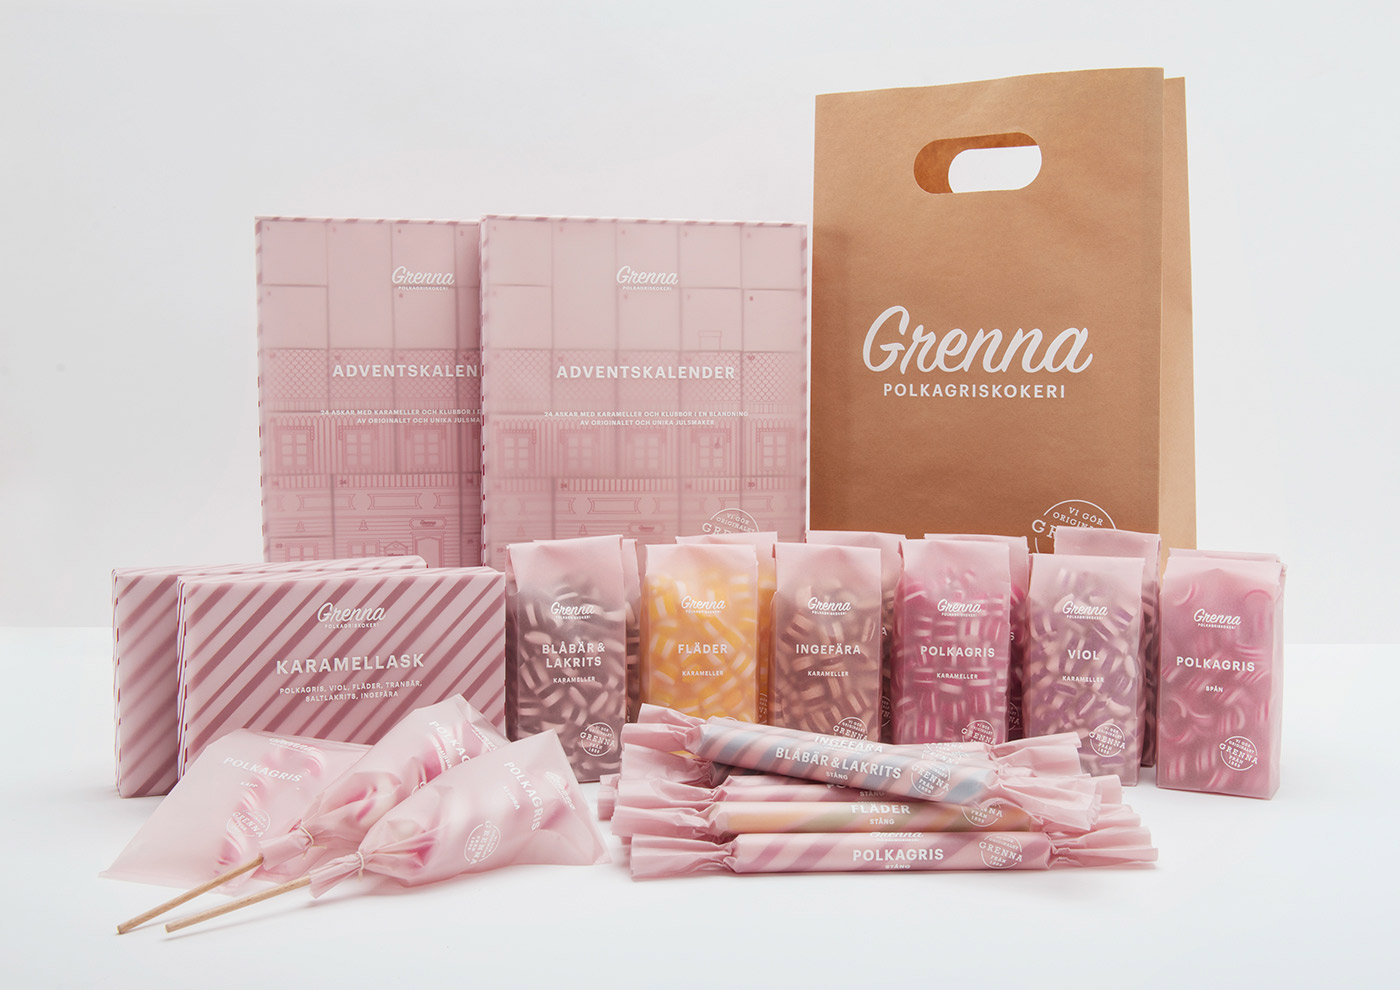 Grenna Polkagriskokeri - Branding & Tasty Packaging Design